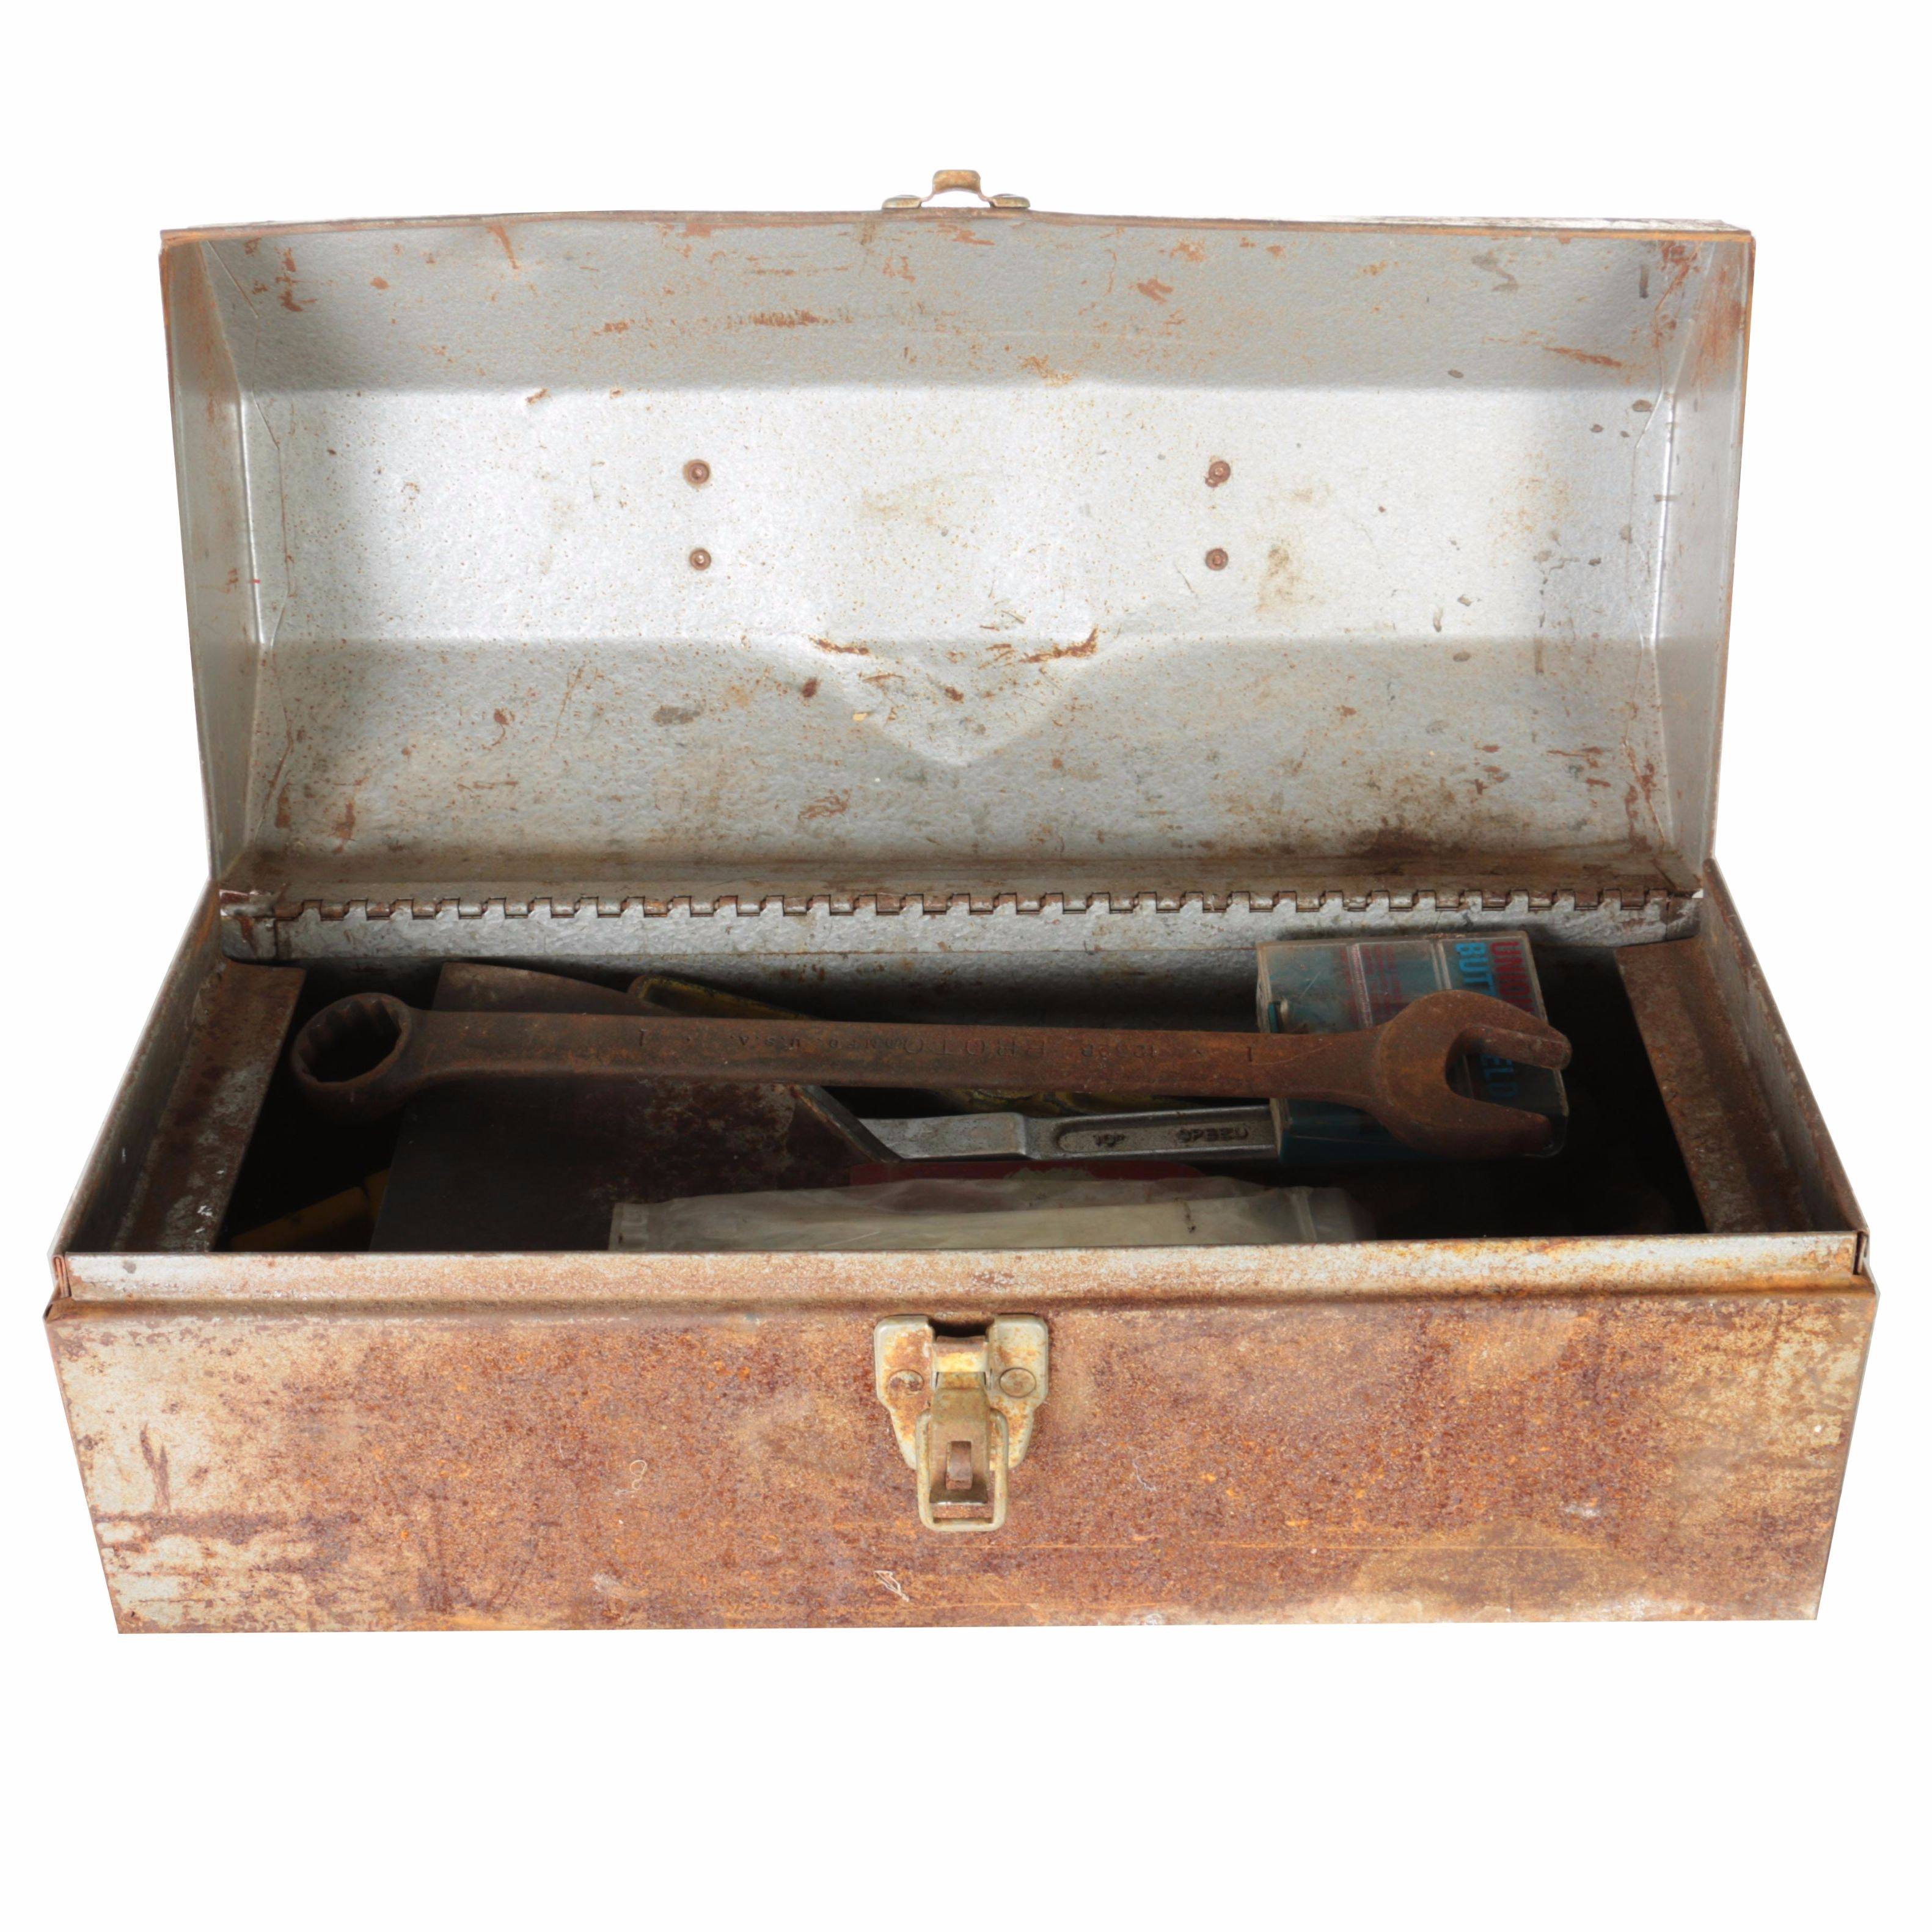 Master Mechanic Value Toolbox with Assorted Tools